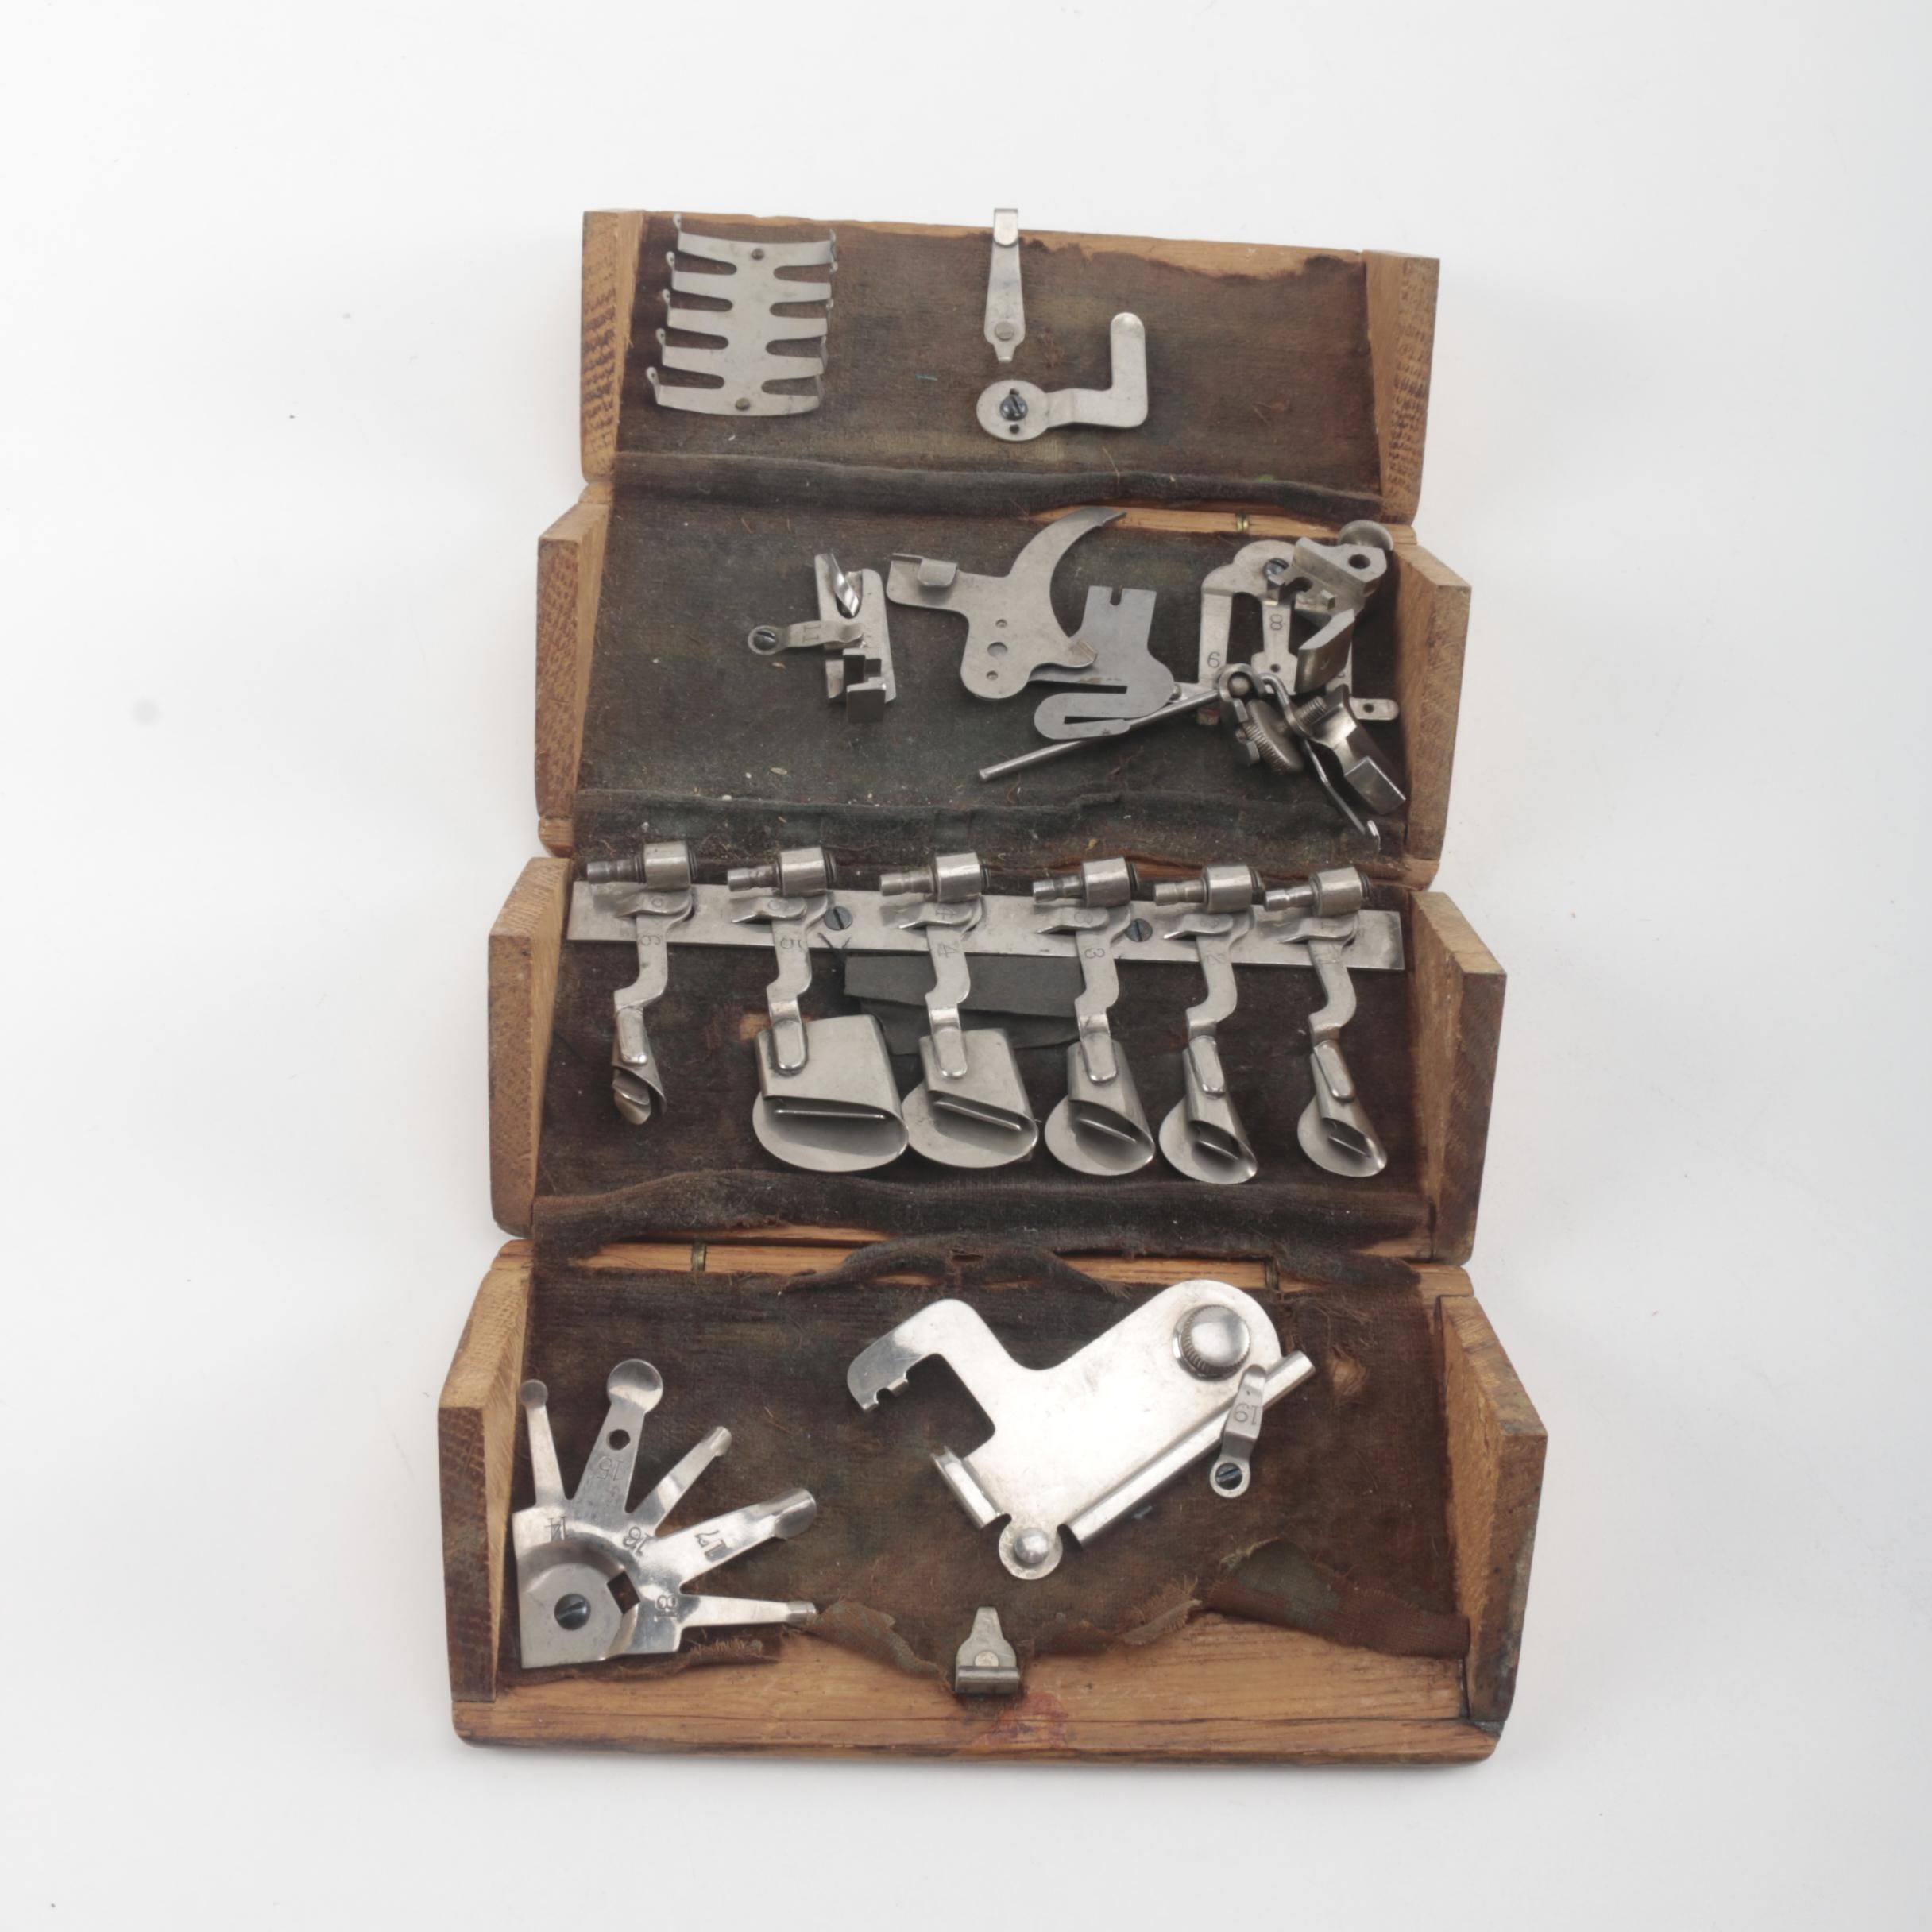 Roll-Up Wooden Tool Box